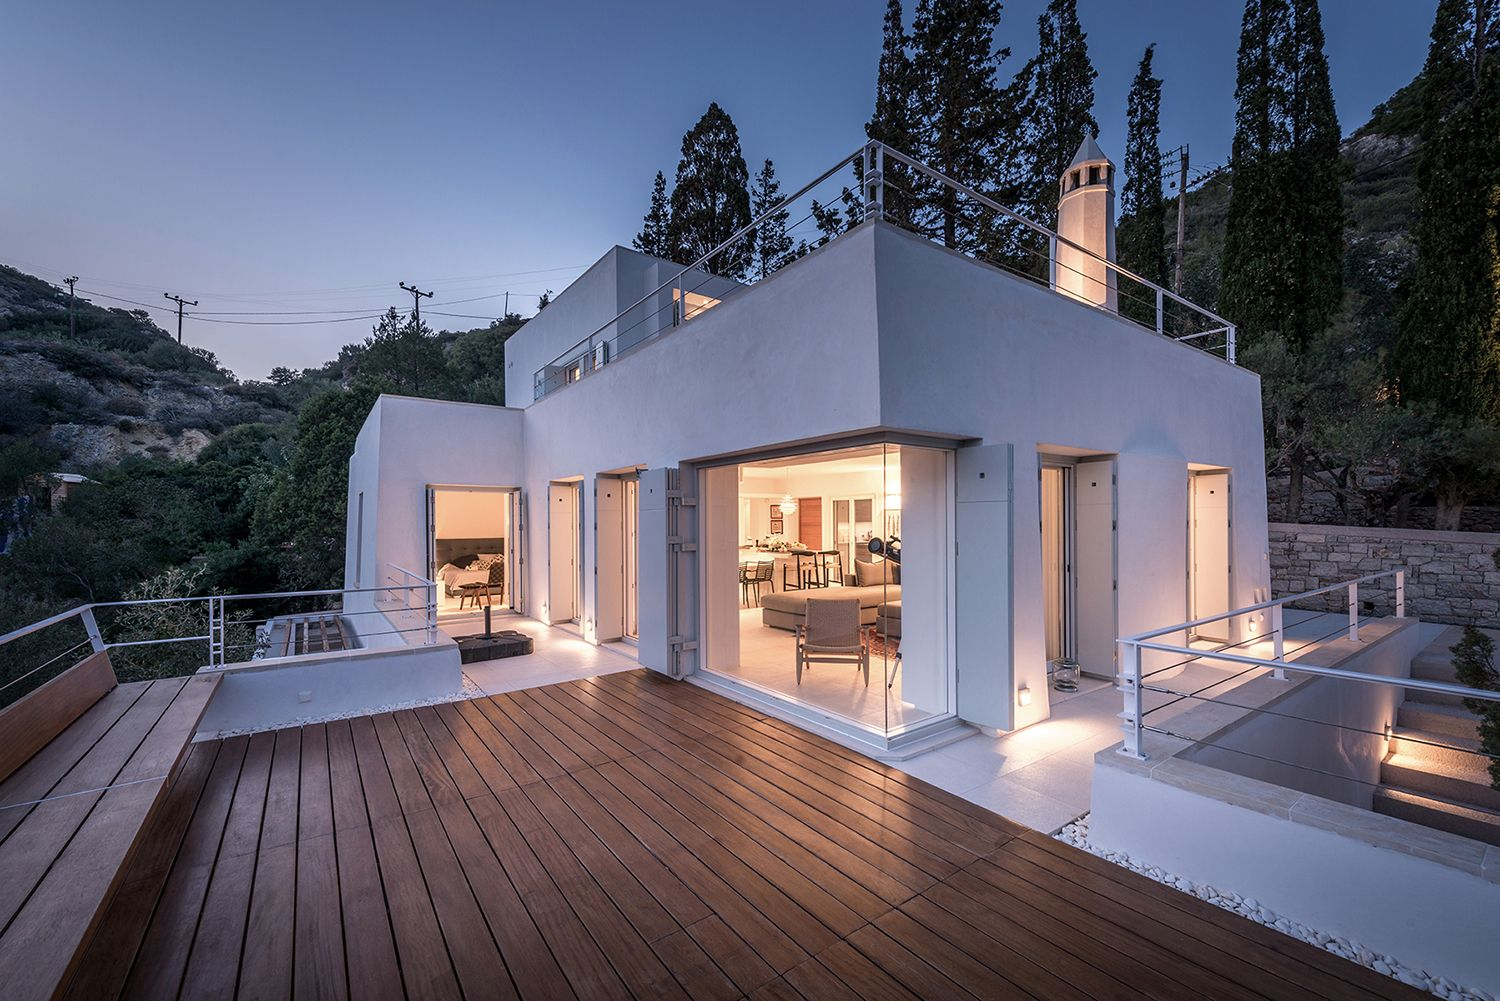 """Check out this @Behance project: """"Cypress Creek House, Kythira by R.C. Tech Architects"""" https://www.behance.net/gallery/44182679/Cypress-Creek-House-Kythira-by-RC-Tech-Architects"""